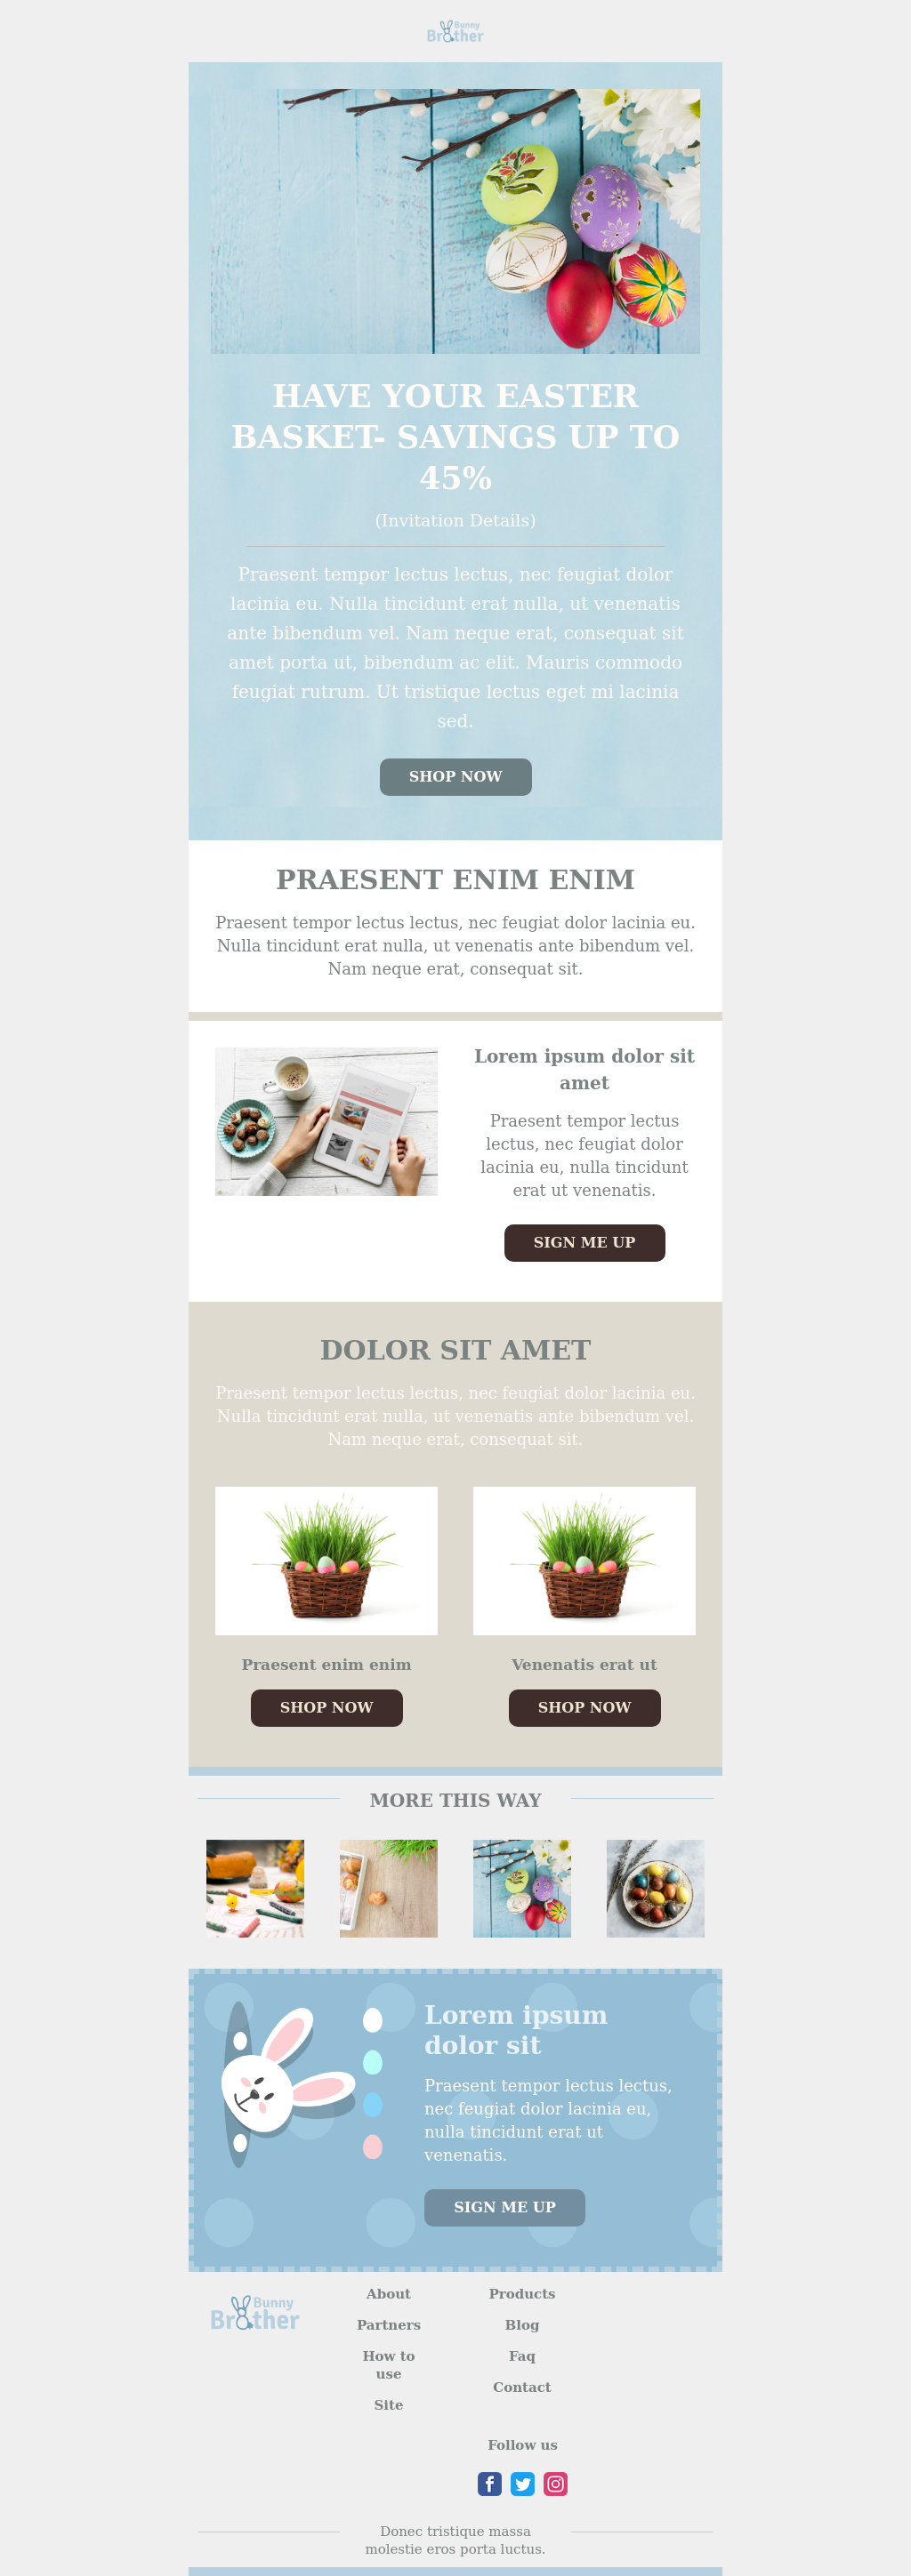 Colorful Easter template for e-commerce industries